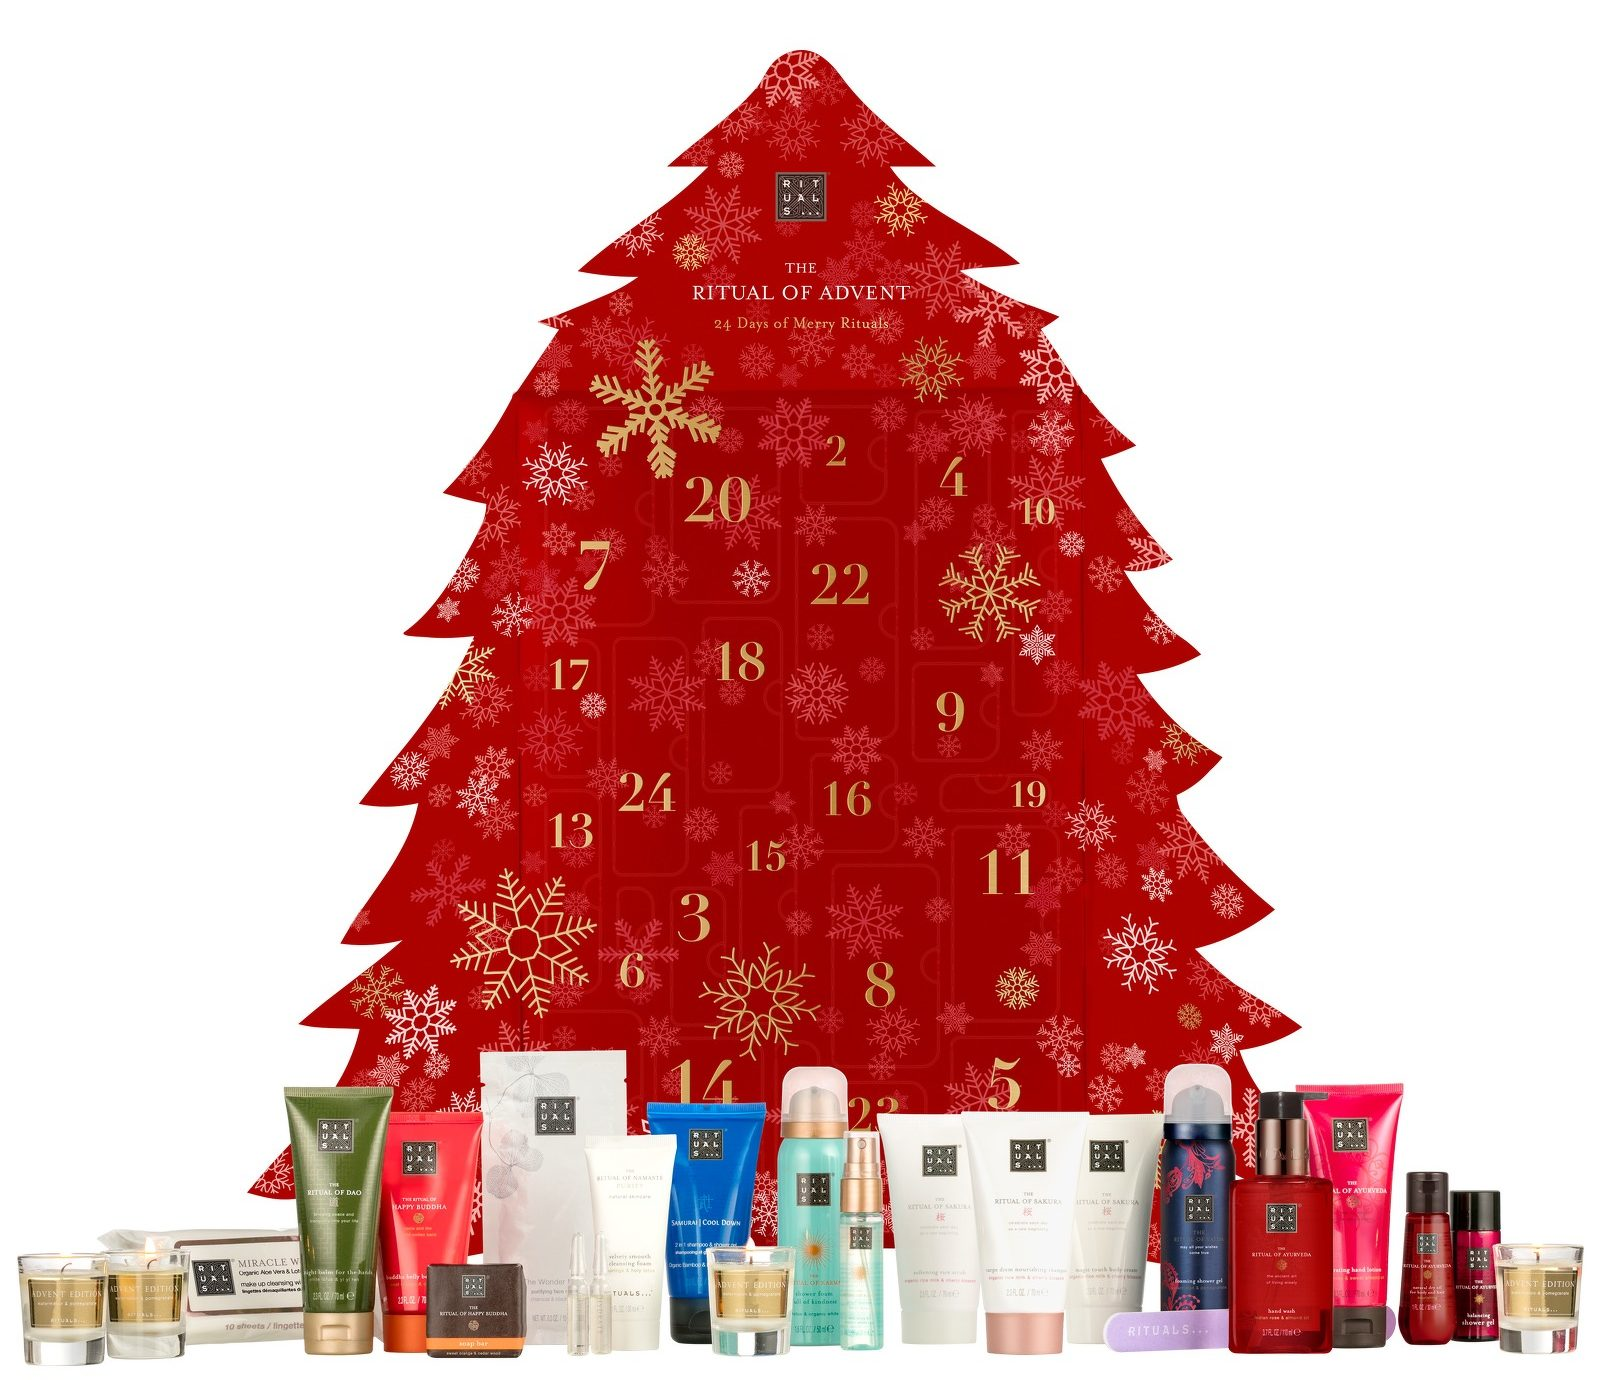 ritual beauty advent calendar beauty advent calendars